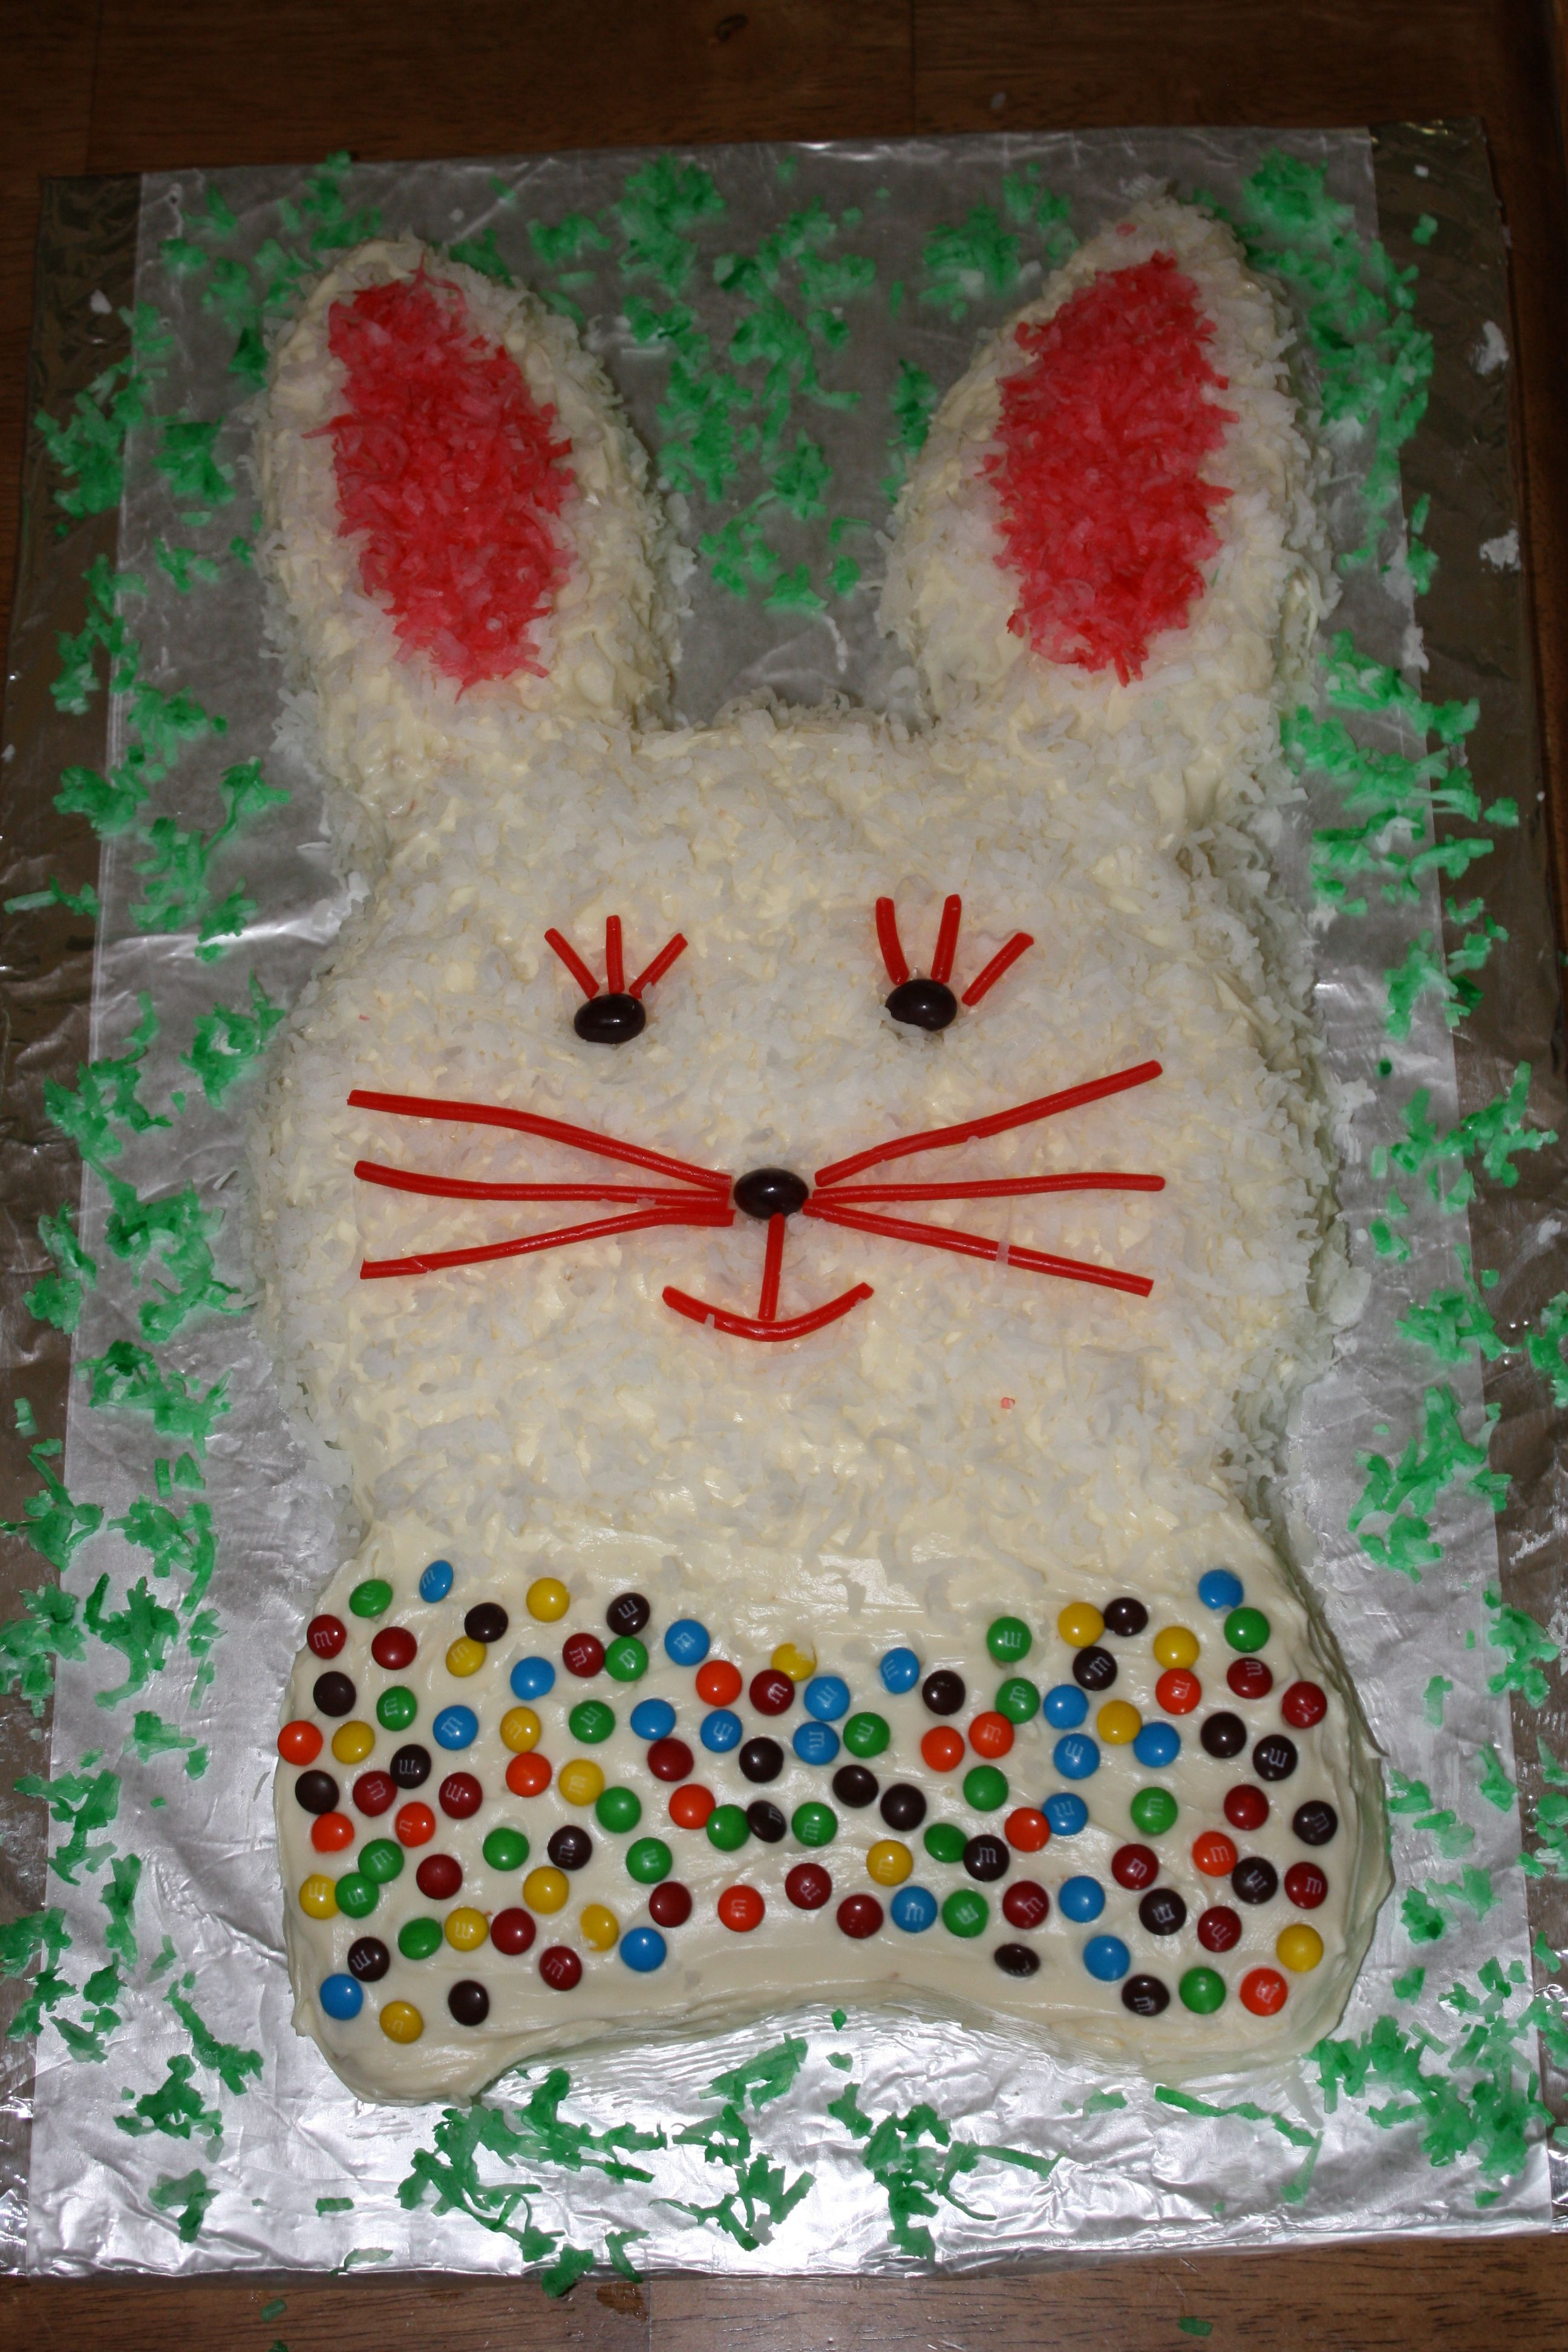 Easter Cake Decorations Pinterest : Easter Bunny Cake - after decorating Holiday Foods ...